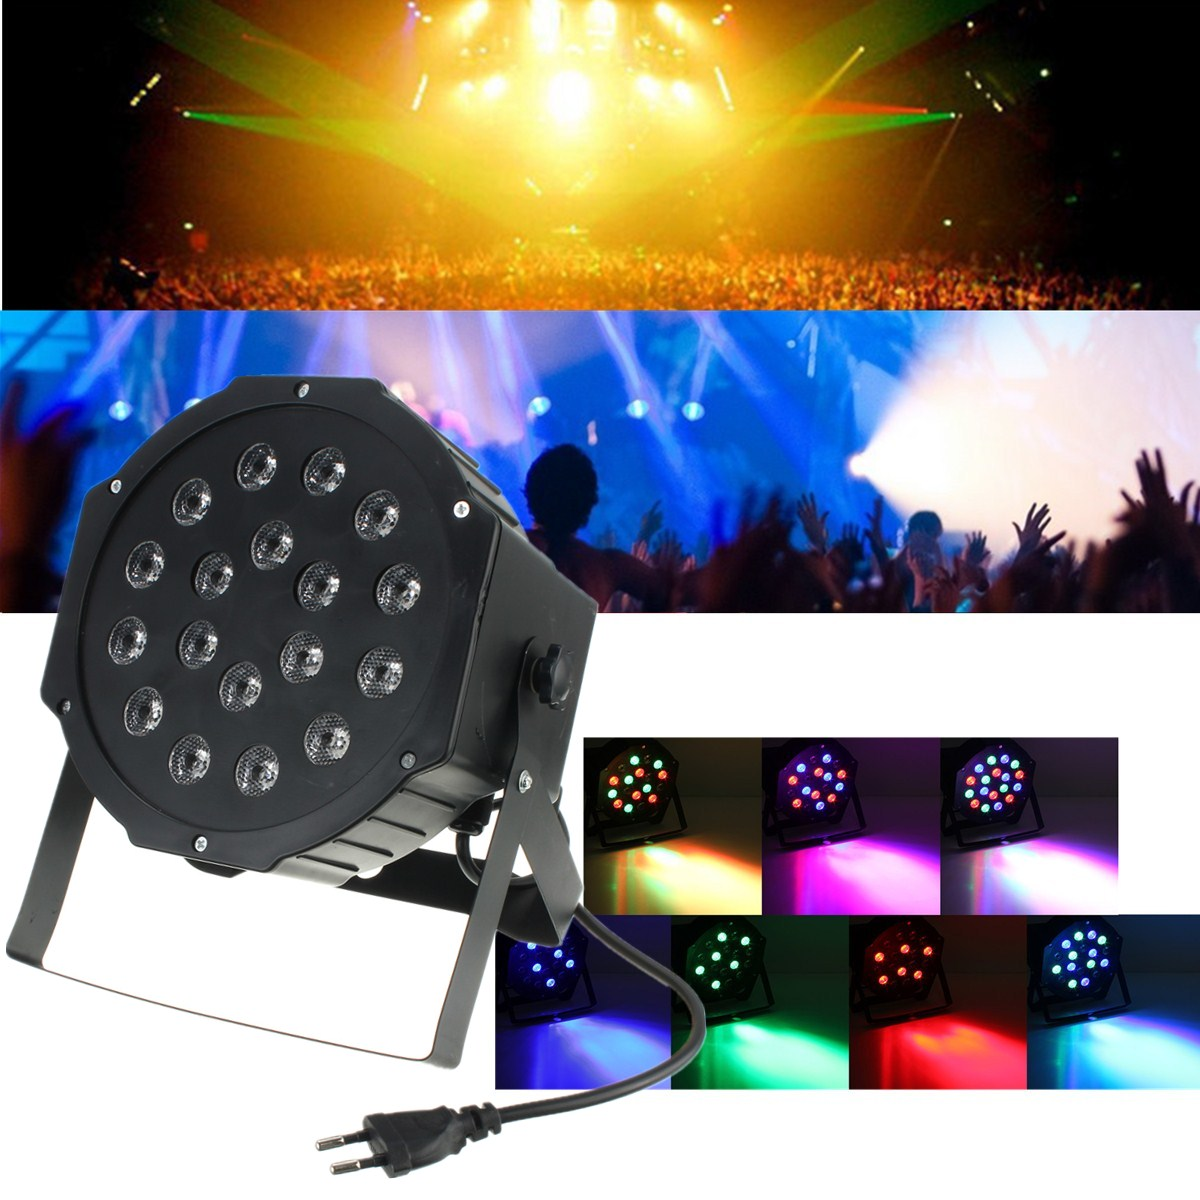 18W RGB LED Stage Light Auto Sound DMX-512 PAR Lamp Laser Projector Party Disco KTV DJ Stage Lighting Effect AC110-220V laideyi 36 rgb led stage light effect laser party disco dj bar effect up lighting dmx projection lamp ktv party light